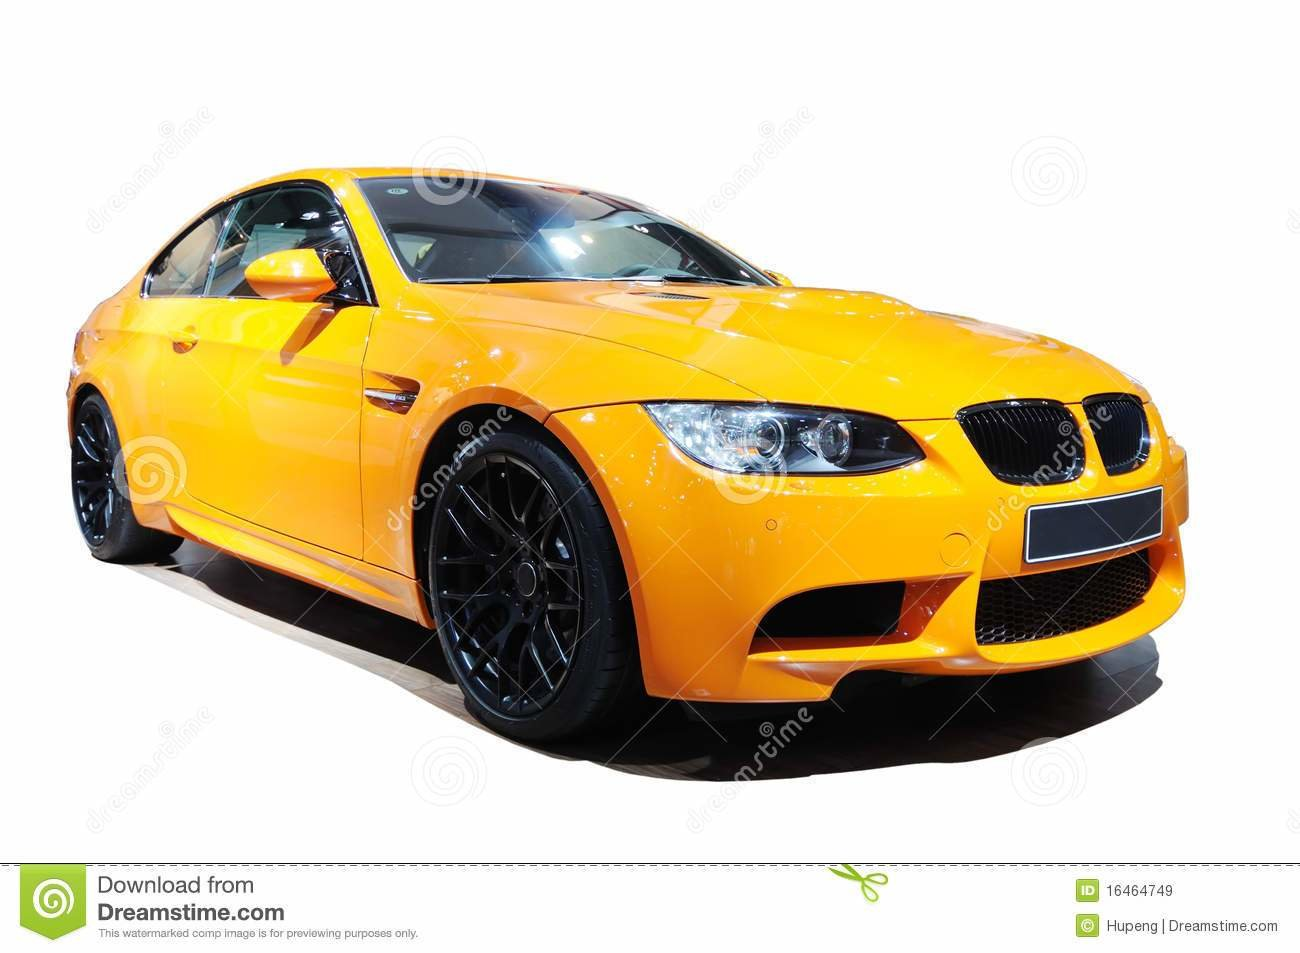 New Yellow Car Bmw M3 Tiger Edition Stock Image Image Of On This Month